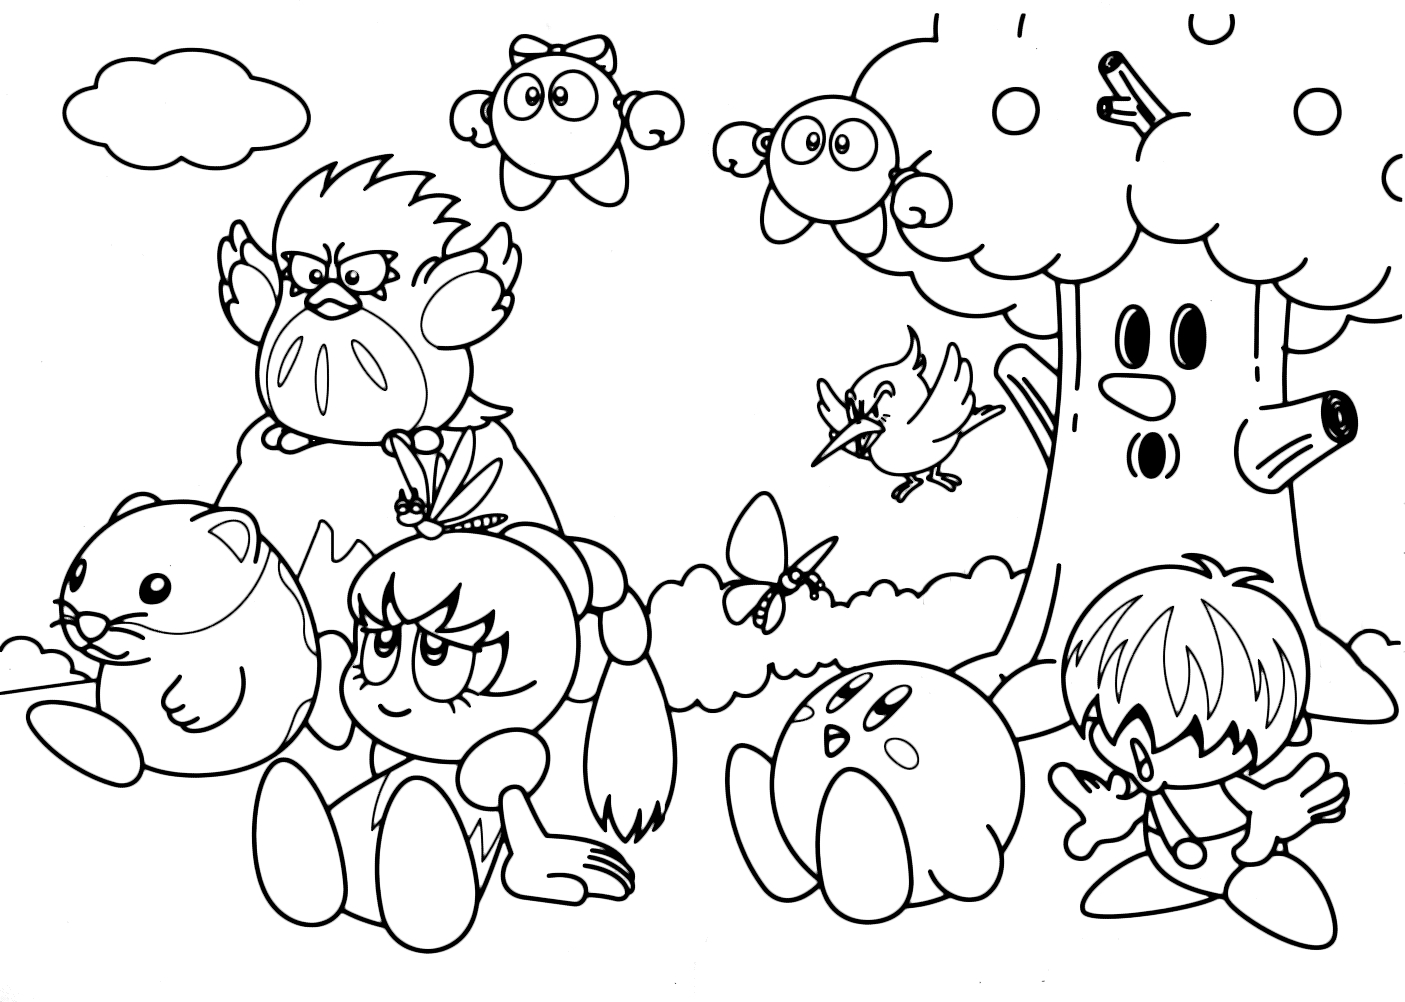 25+ Pretty Image of Kirby Coloring Pages